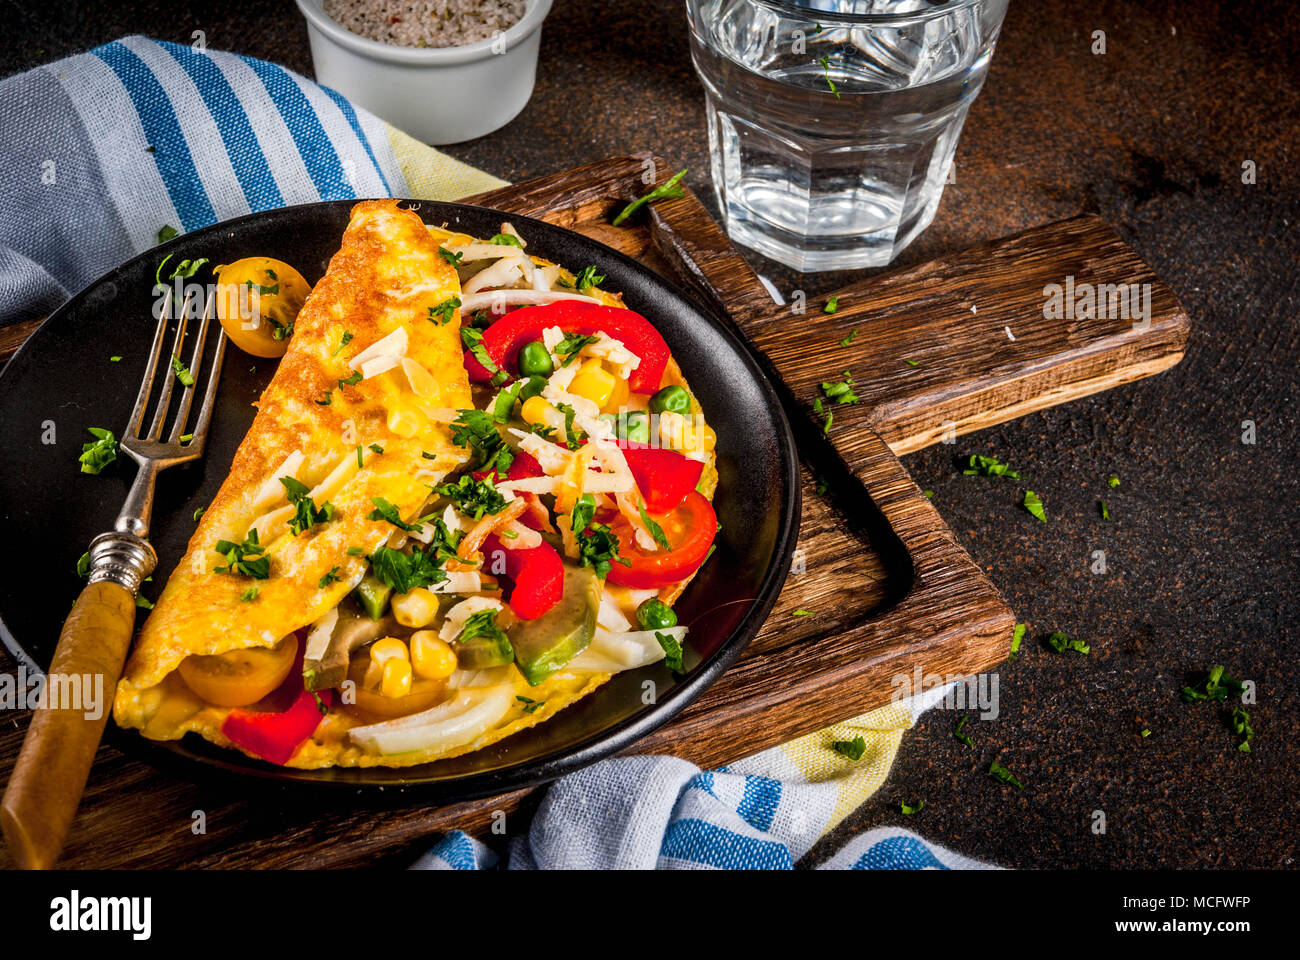 Healthy breakfast food, Stuffed egg omelette with vegetable, dark concrete background copy space - Stock Image